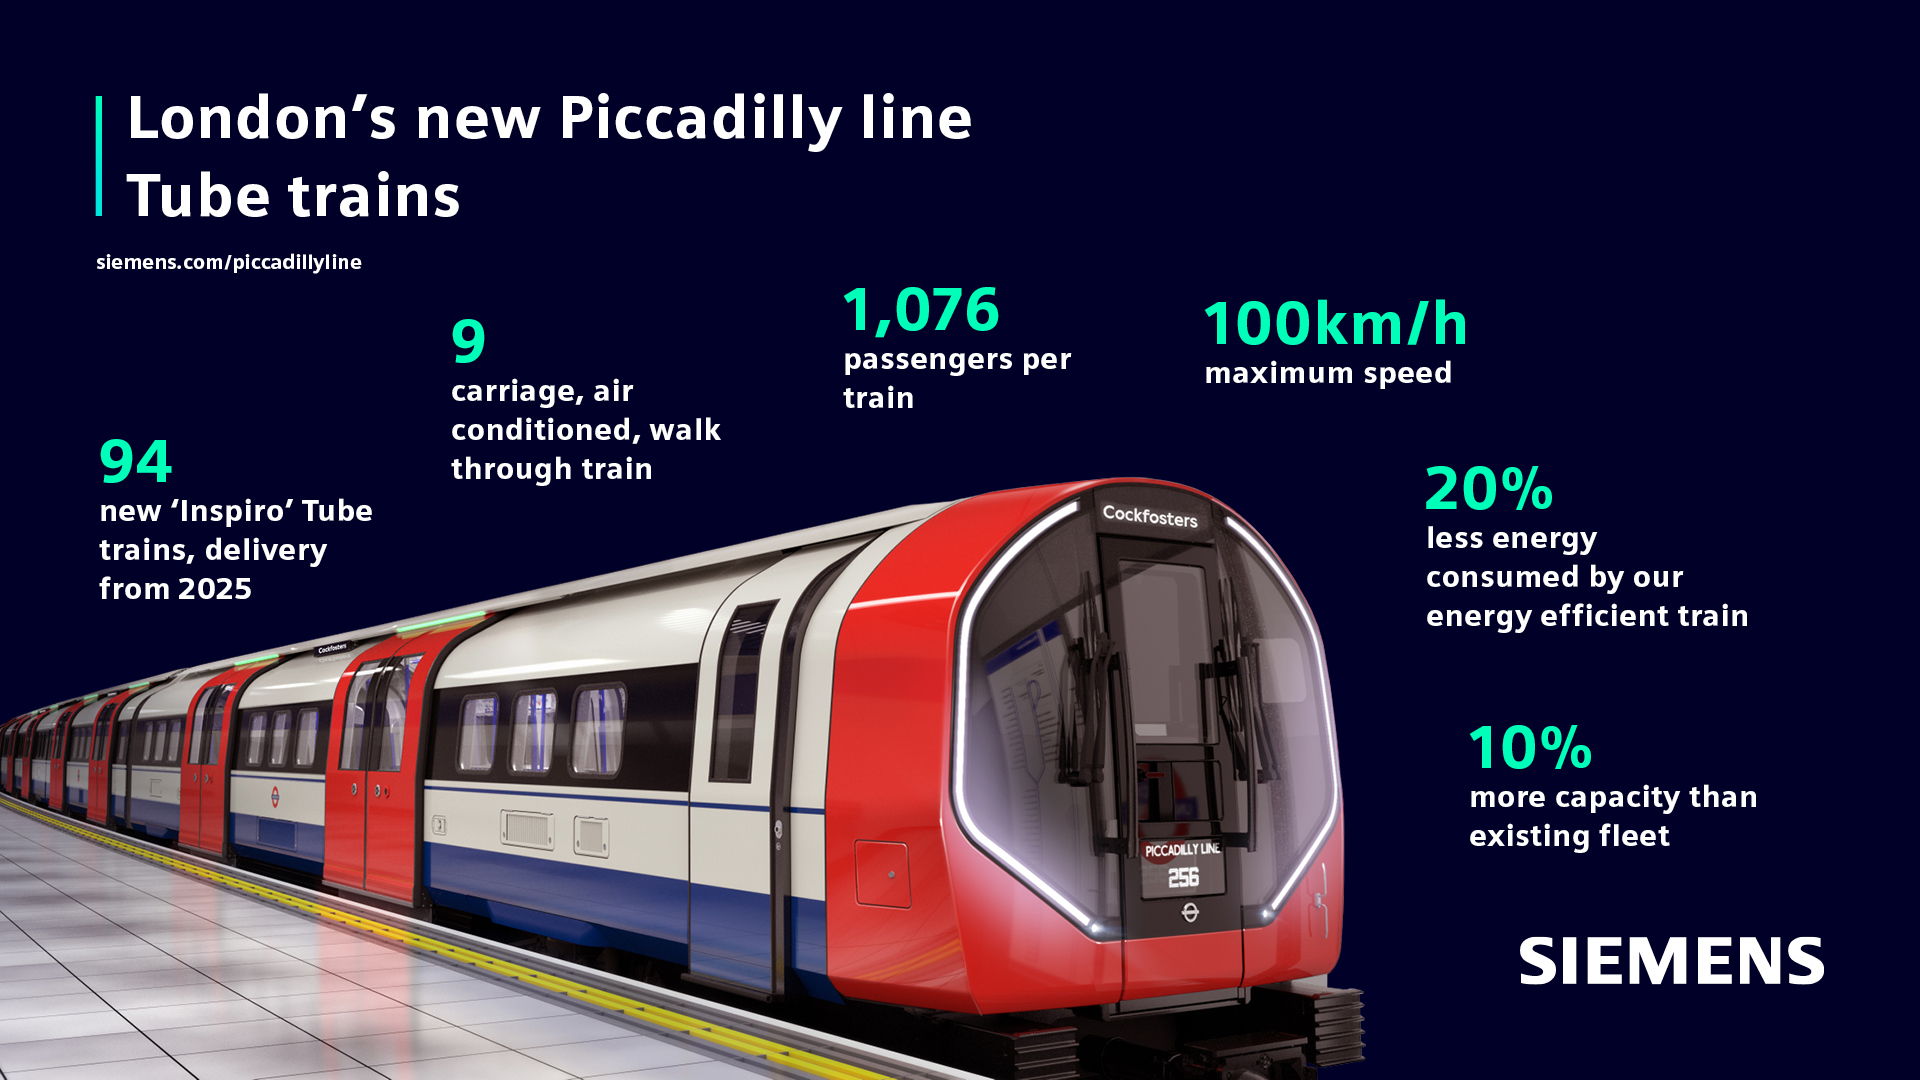 New train for the Piccadilly line, London Underground